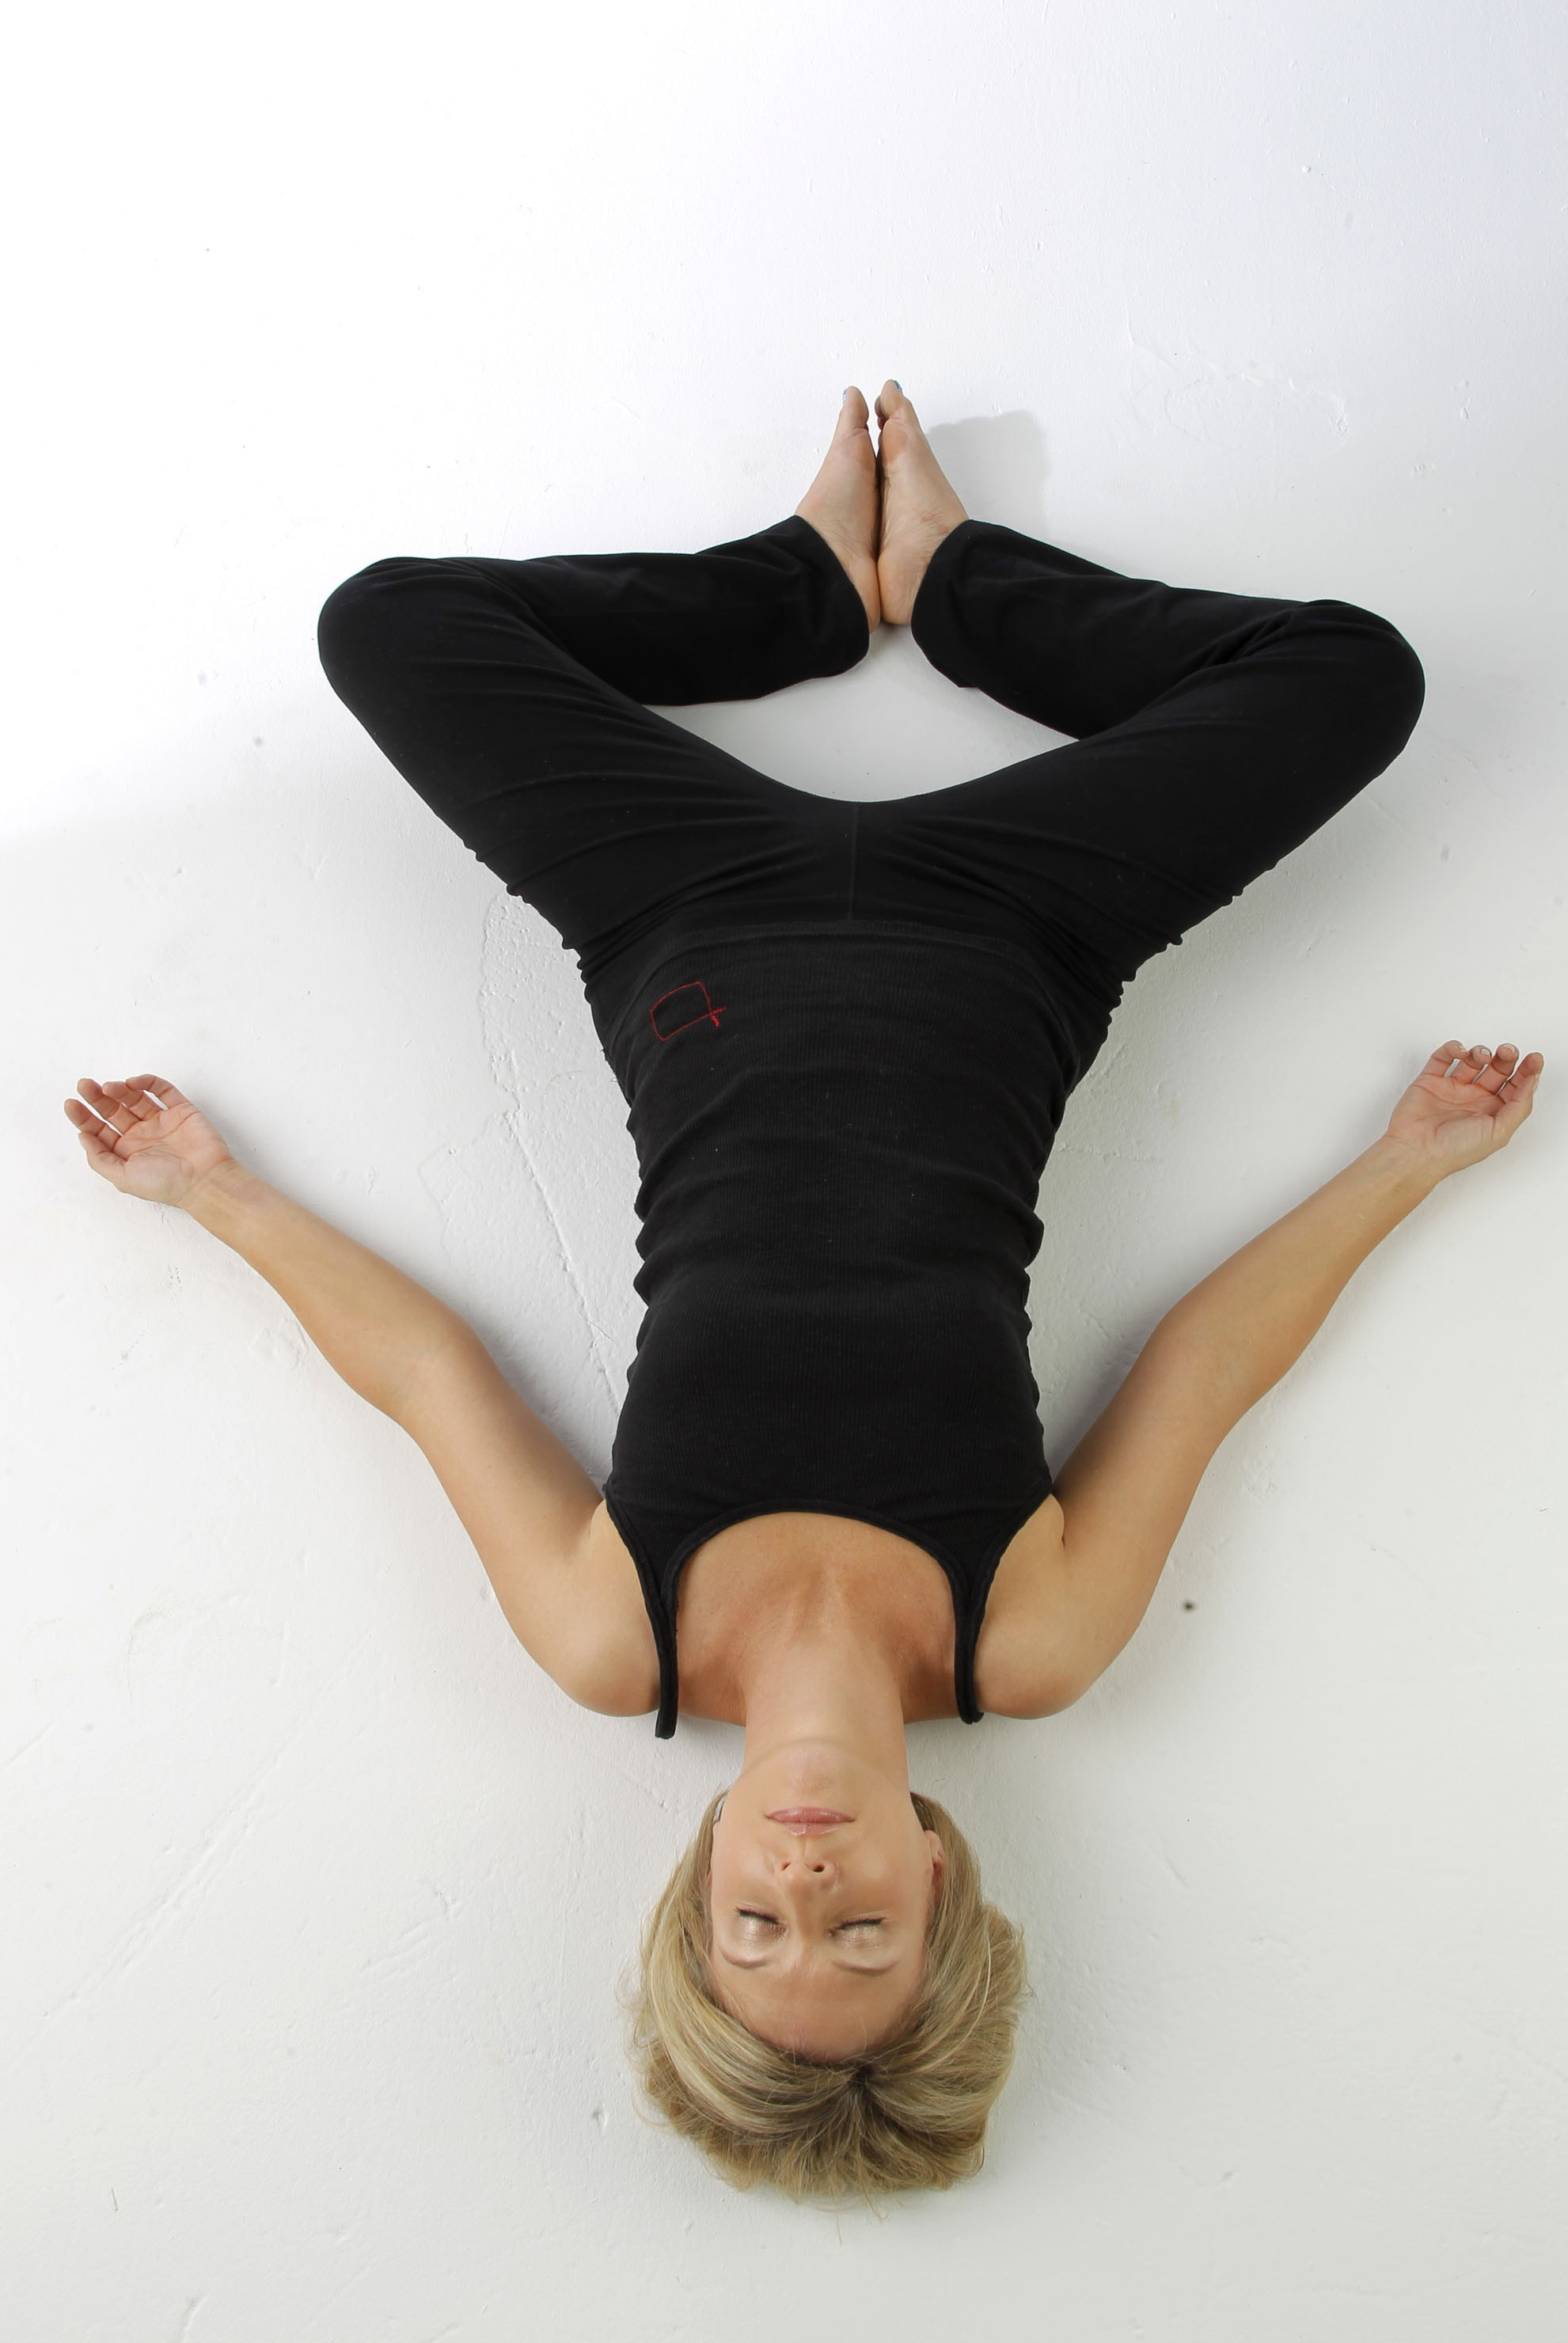 Meredith Smith Demonstrates The Yoga Pose Reclining Butterfly